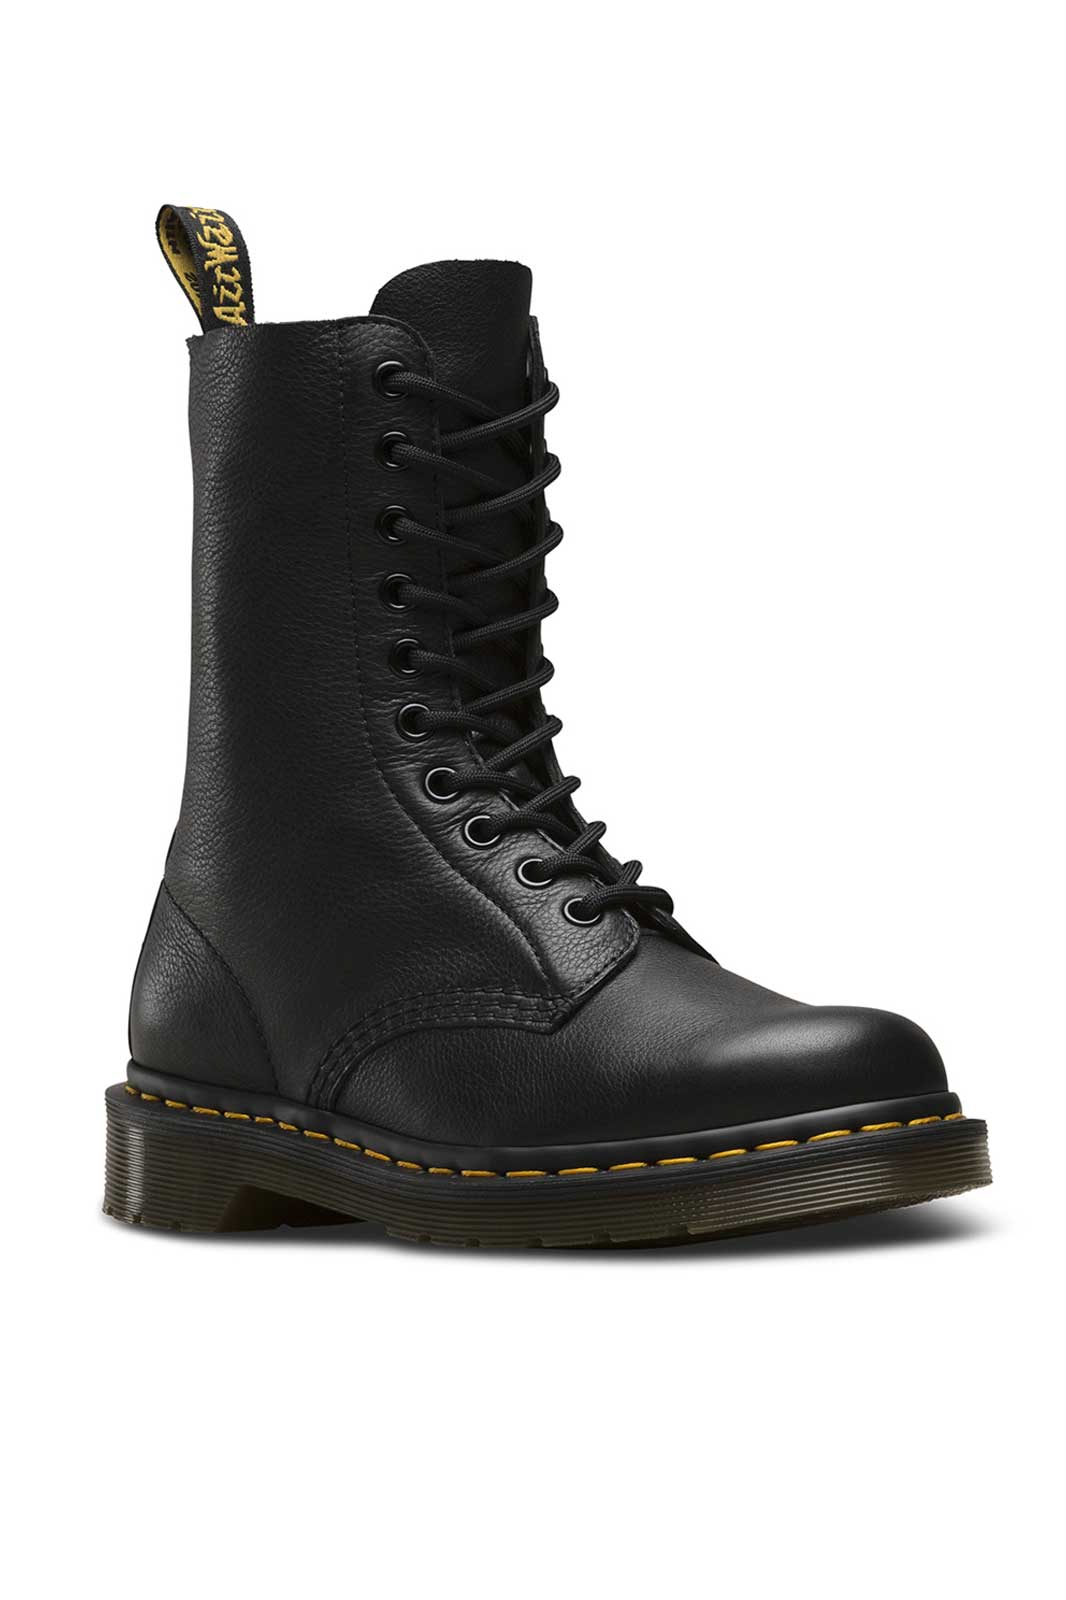 1490 Virginia 10-Eye Boot